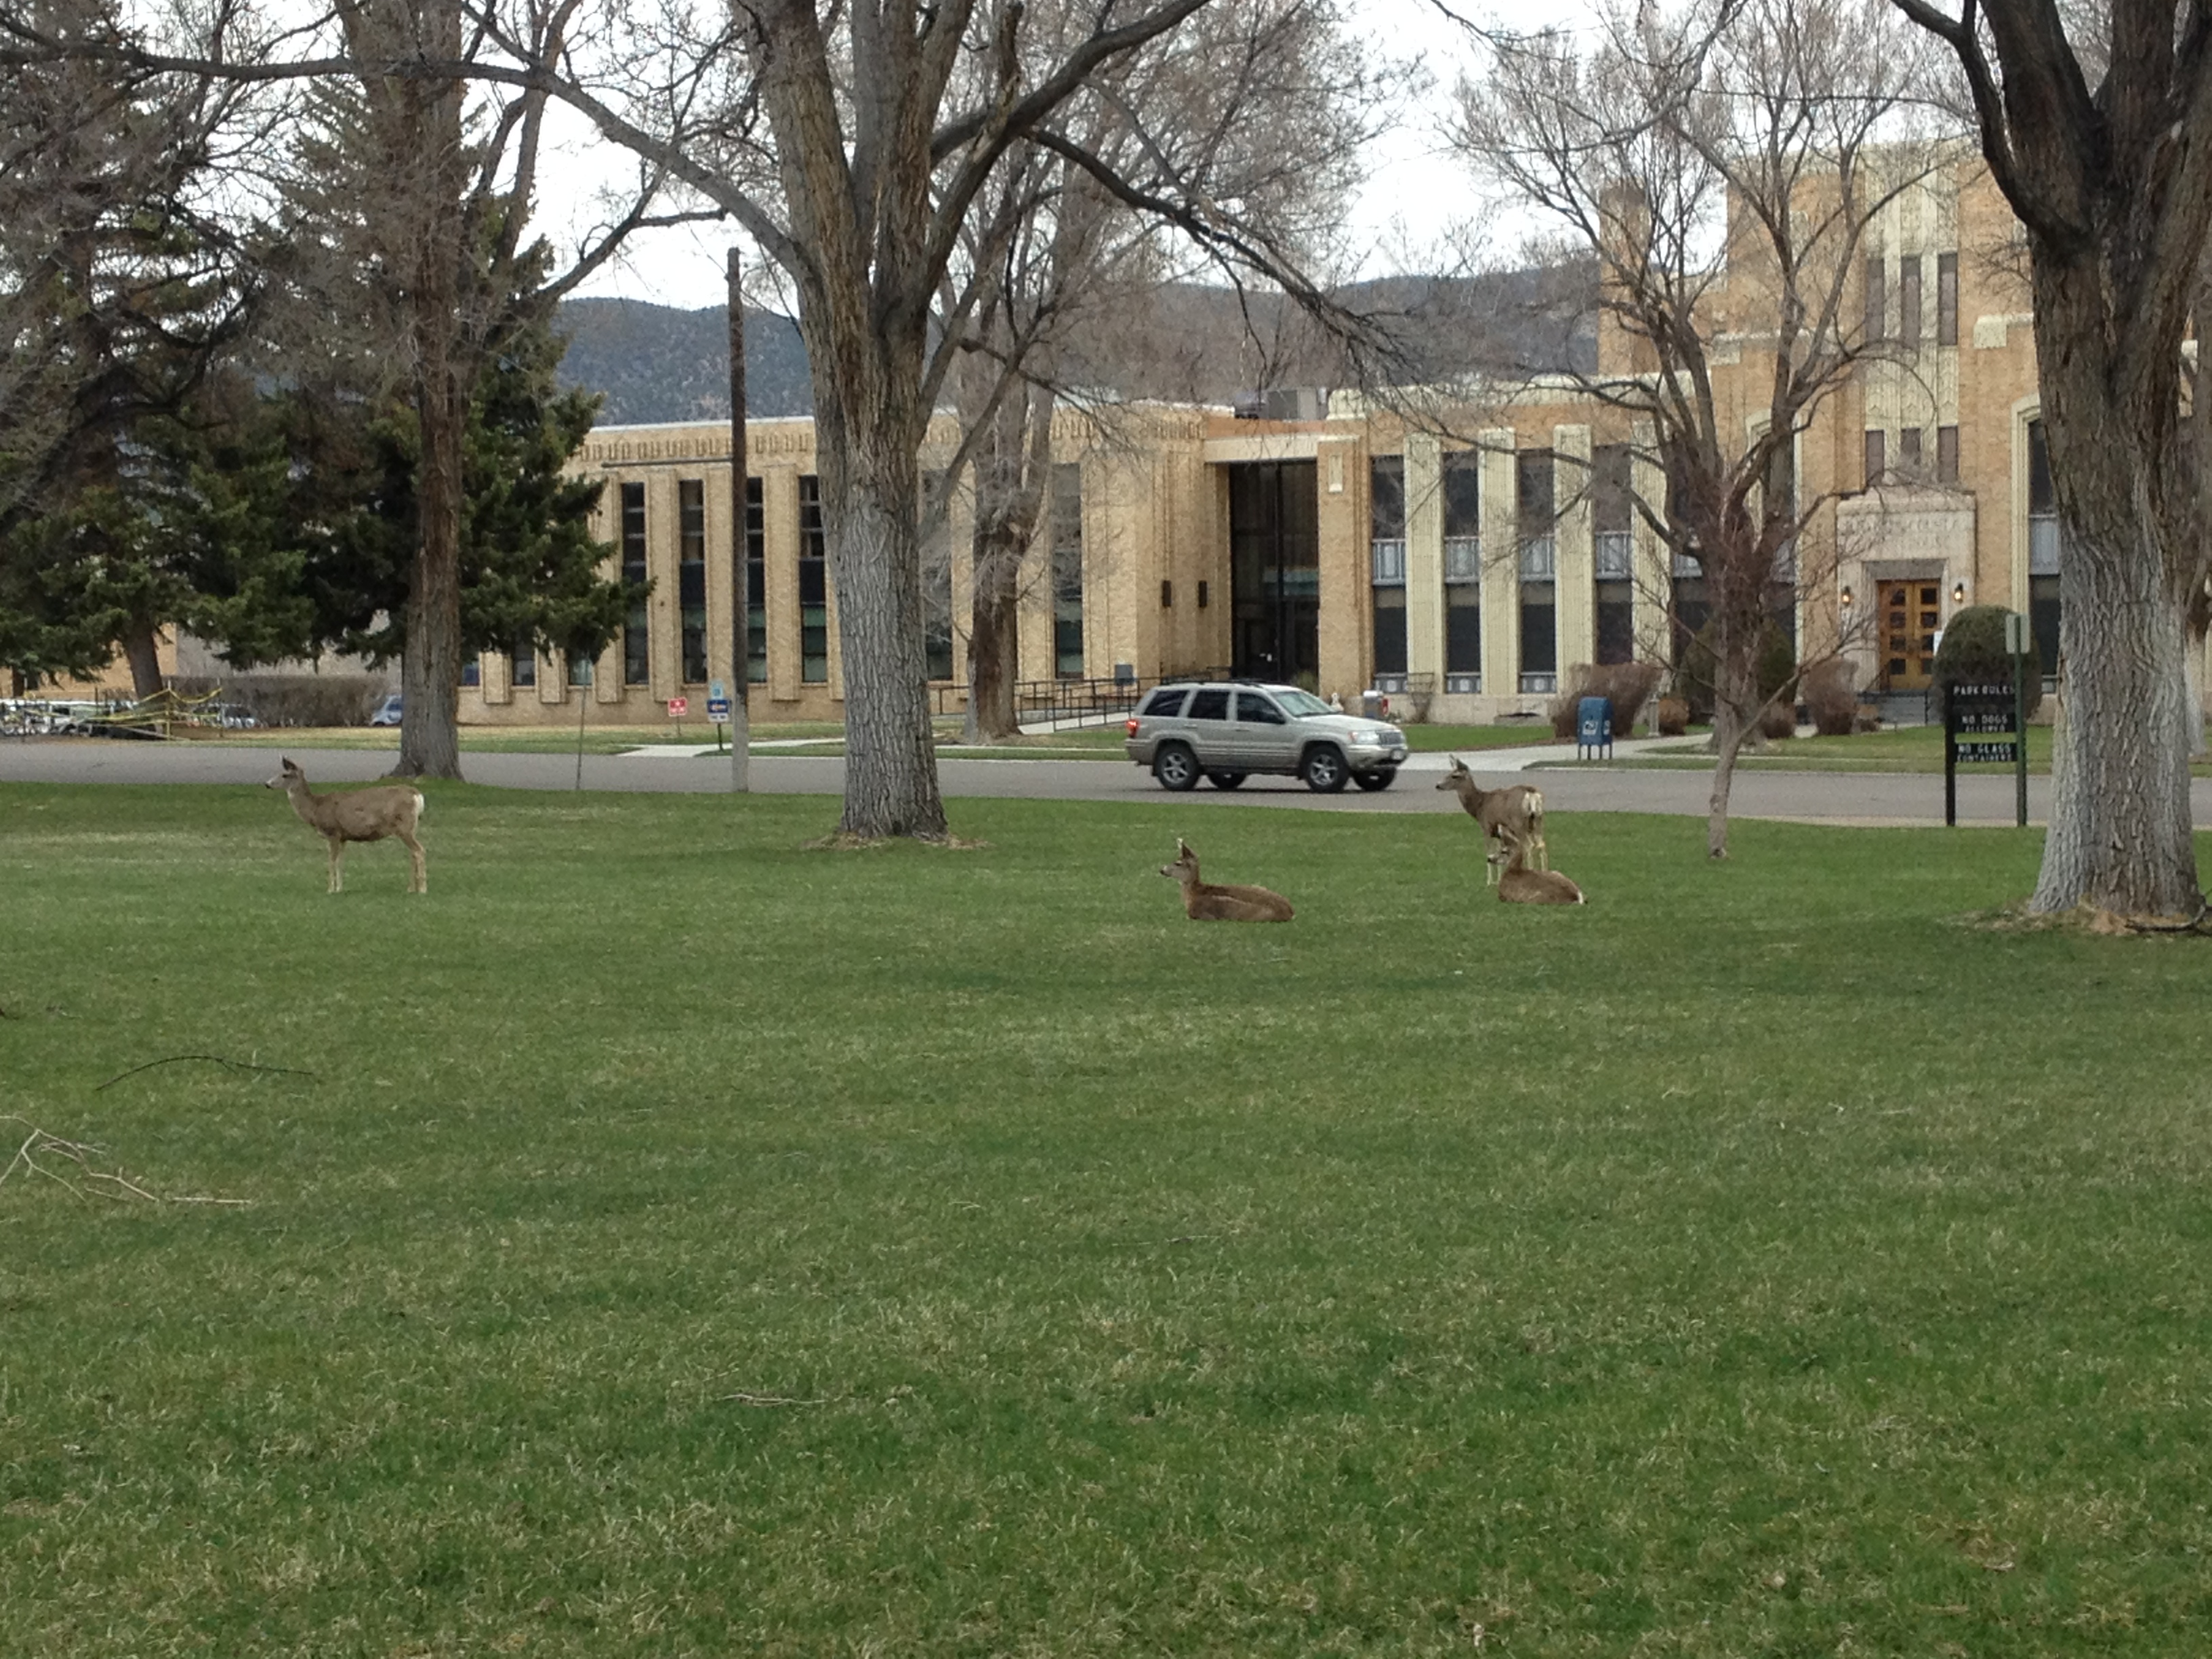 Observing some of the denizens of the local Salida deer herd